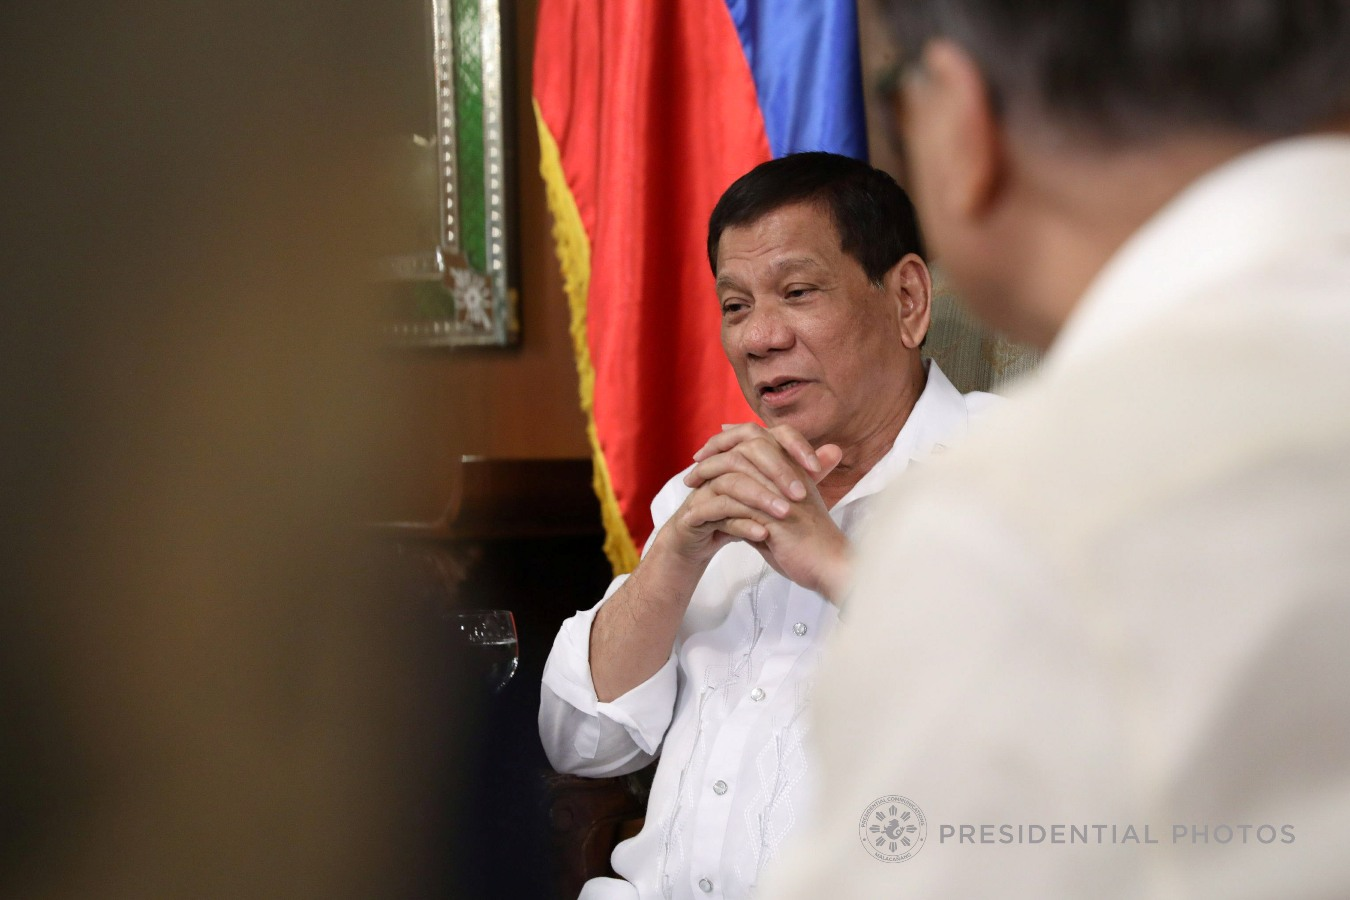 President Rodrigo Roa Duterte engages in a discussion with Carmina and Horacio Castillo Jr., parents of the late Horacio Castillo III, during a meeting with the President in Malacañan Palace on October 4, 2017.  Joining the President during the meeting are Justice Secretary Vitaliano Aguirre II and Volunteers Against Crime and Corruption Founding Chairman Dante Jimenez. KARL NORMAN ALONZO/PRESIDENTIAL PHOTO